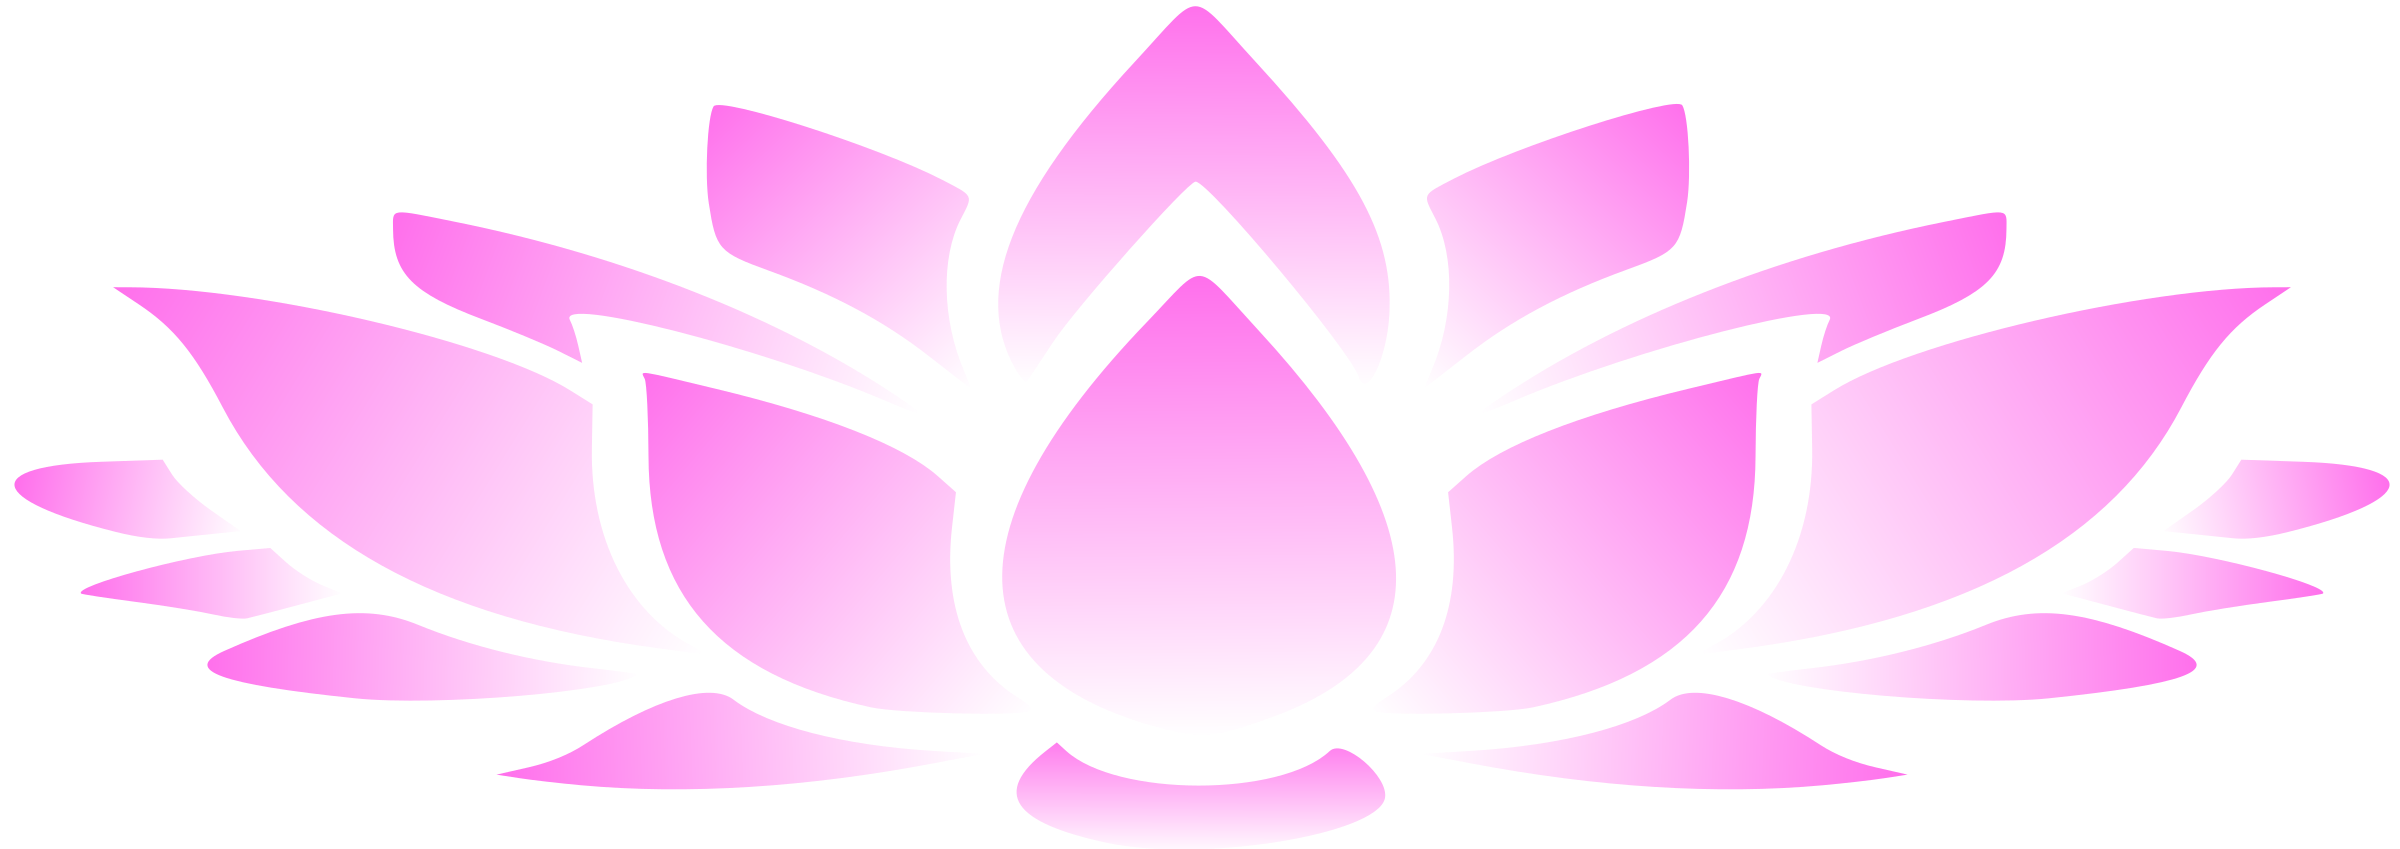 Clipart - Lotus flower 2